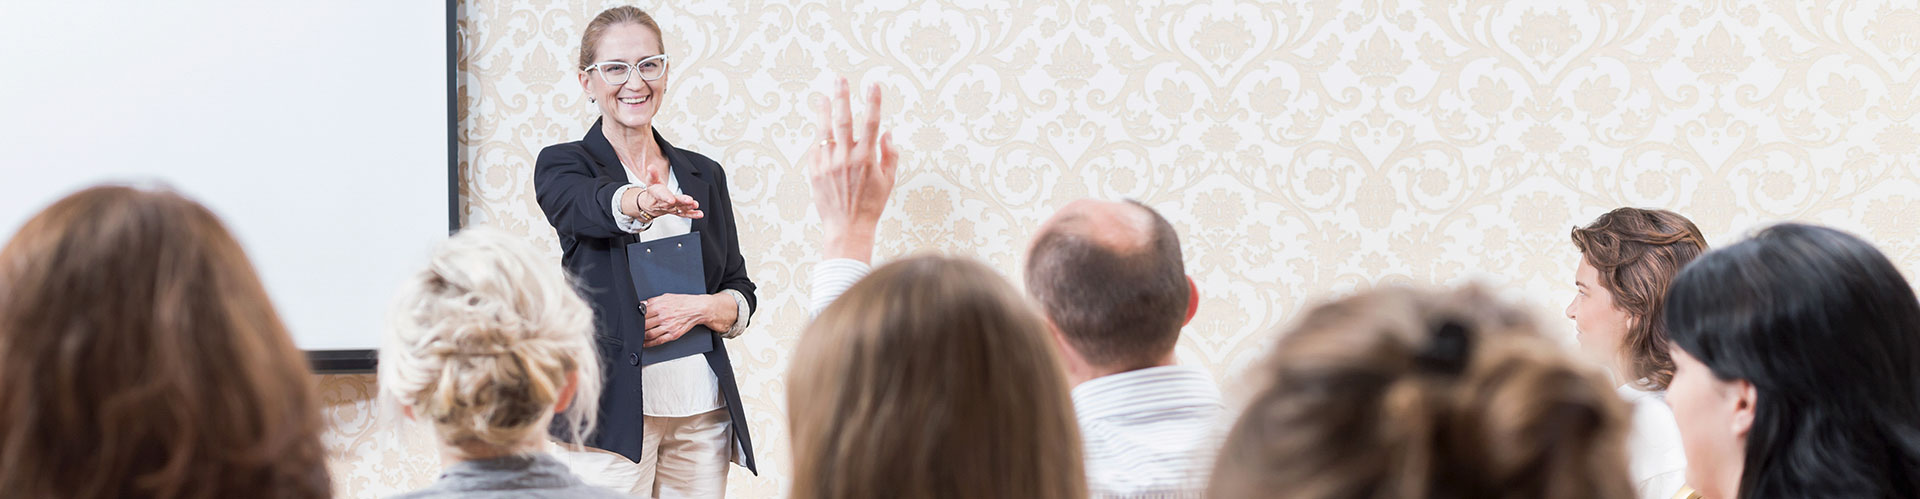 tips-work-injury-prevention-rogers-mn_seminar